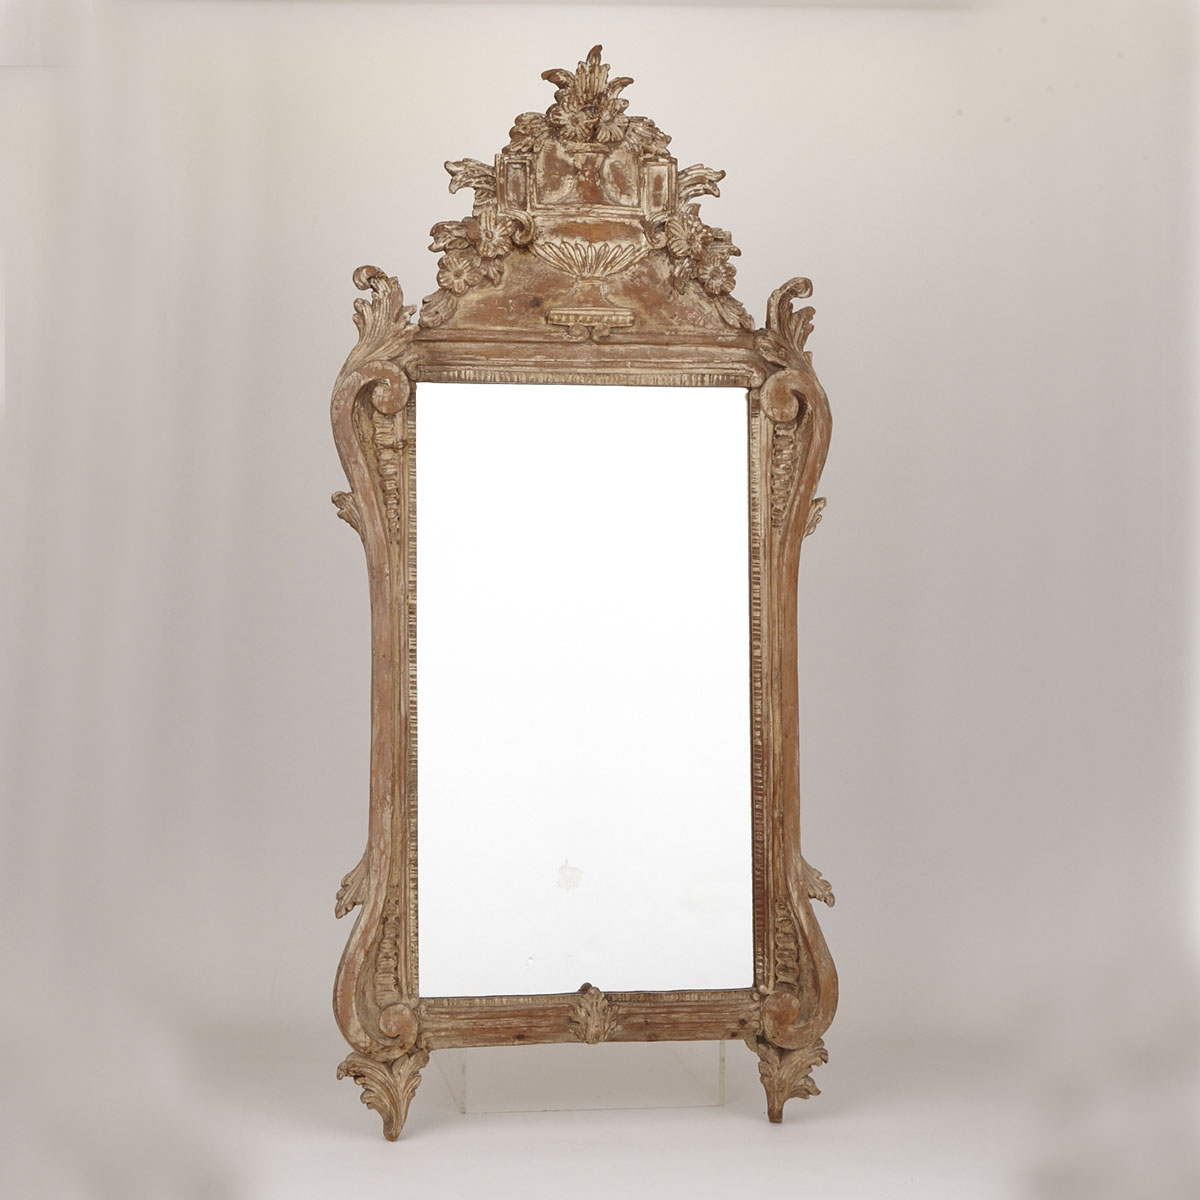 Italian Neoclassical Style Carved Mirror, early 20th century